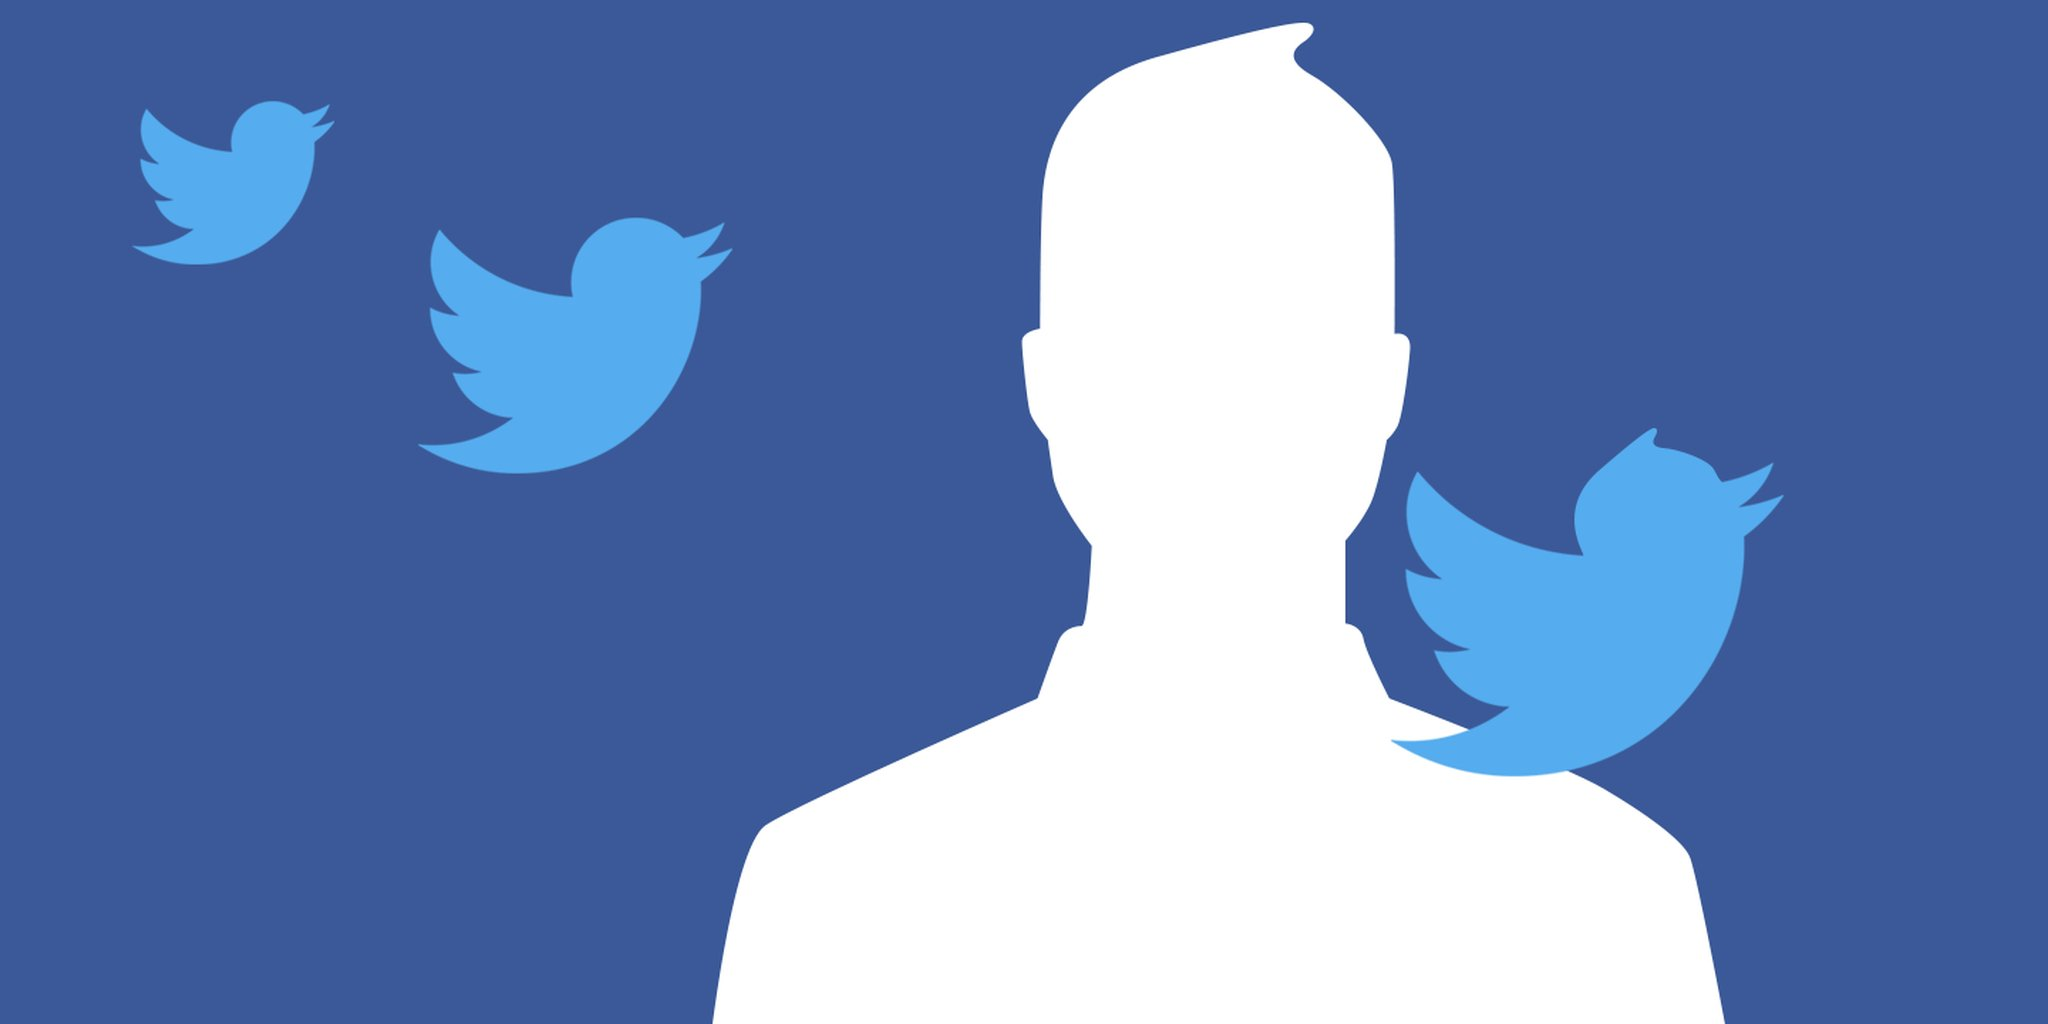 2048x1024 Will Twitter's Facebook Like Profile Redesign Win Over New Users